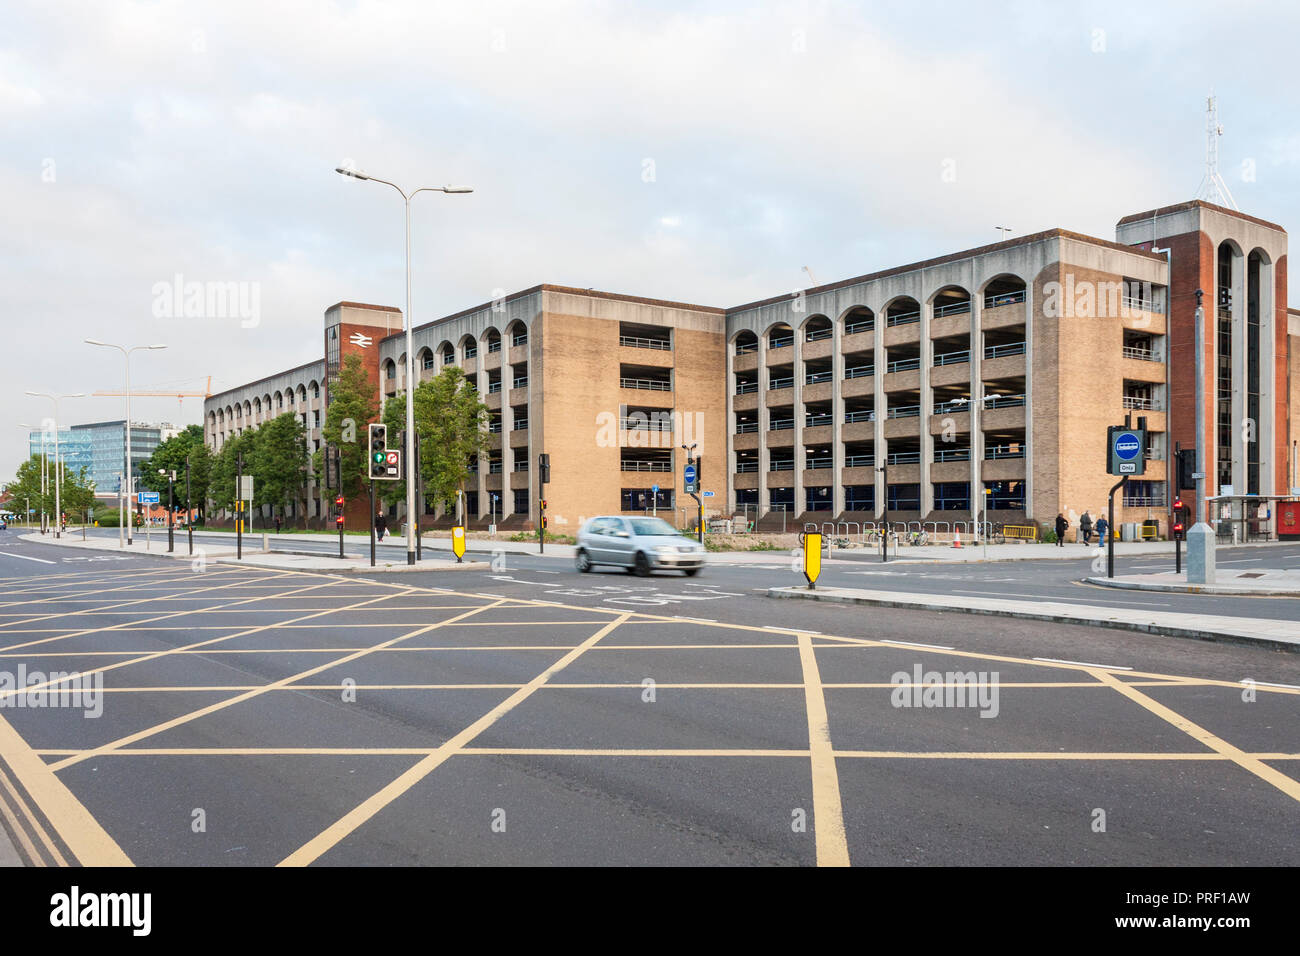 Multi-storey car park at Reading Train Station view from yellow box junction on road. - Stock Image